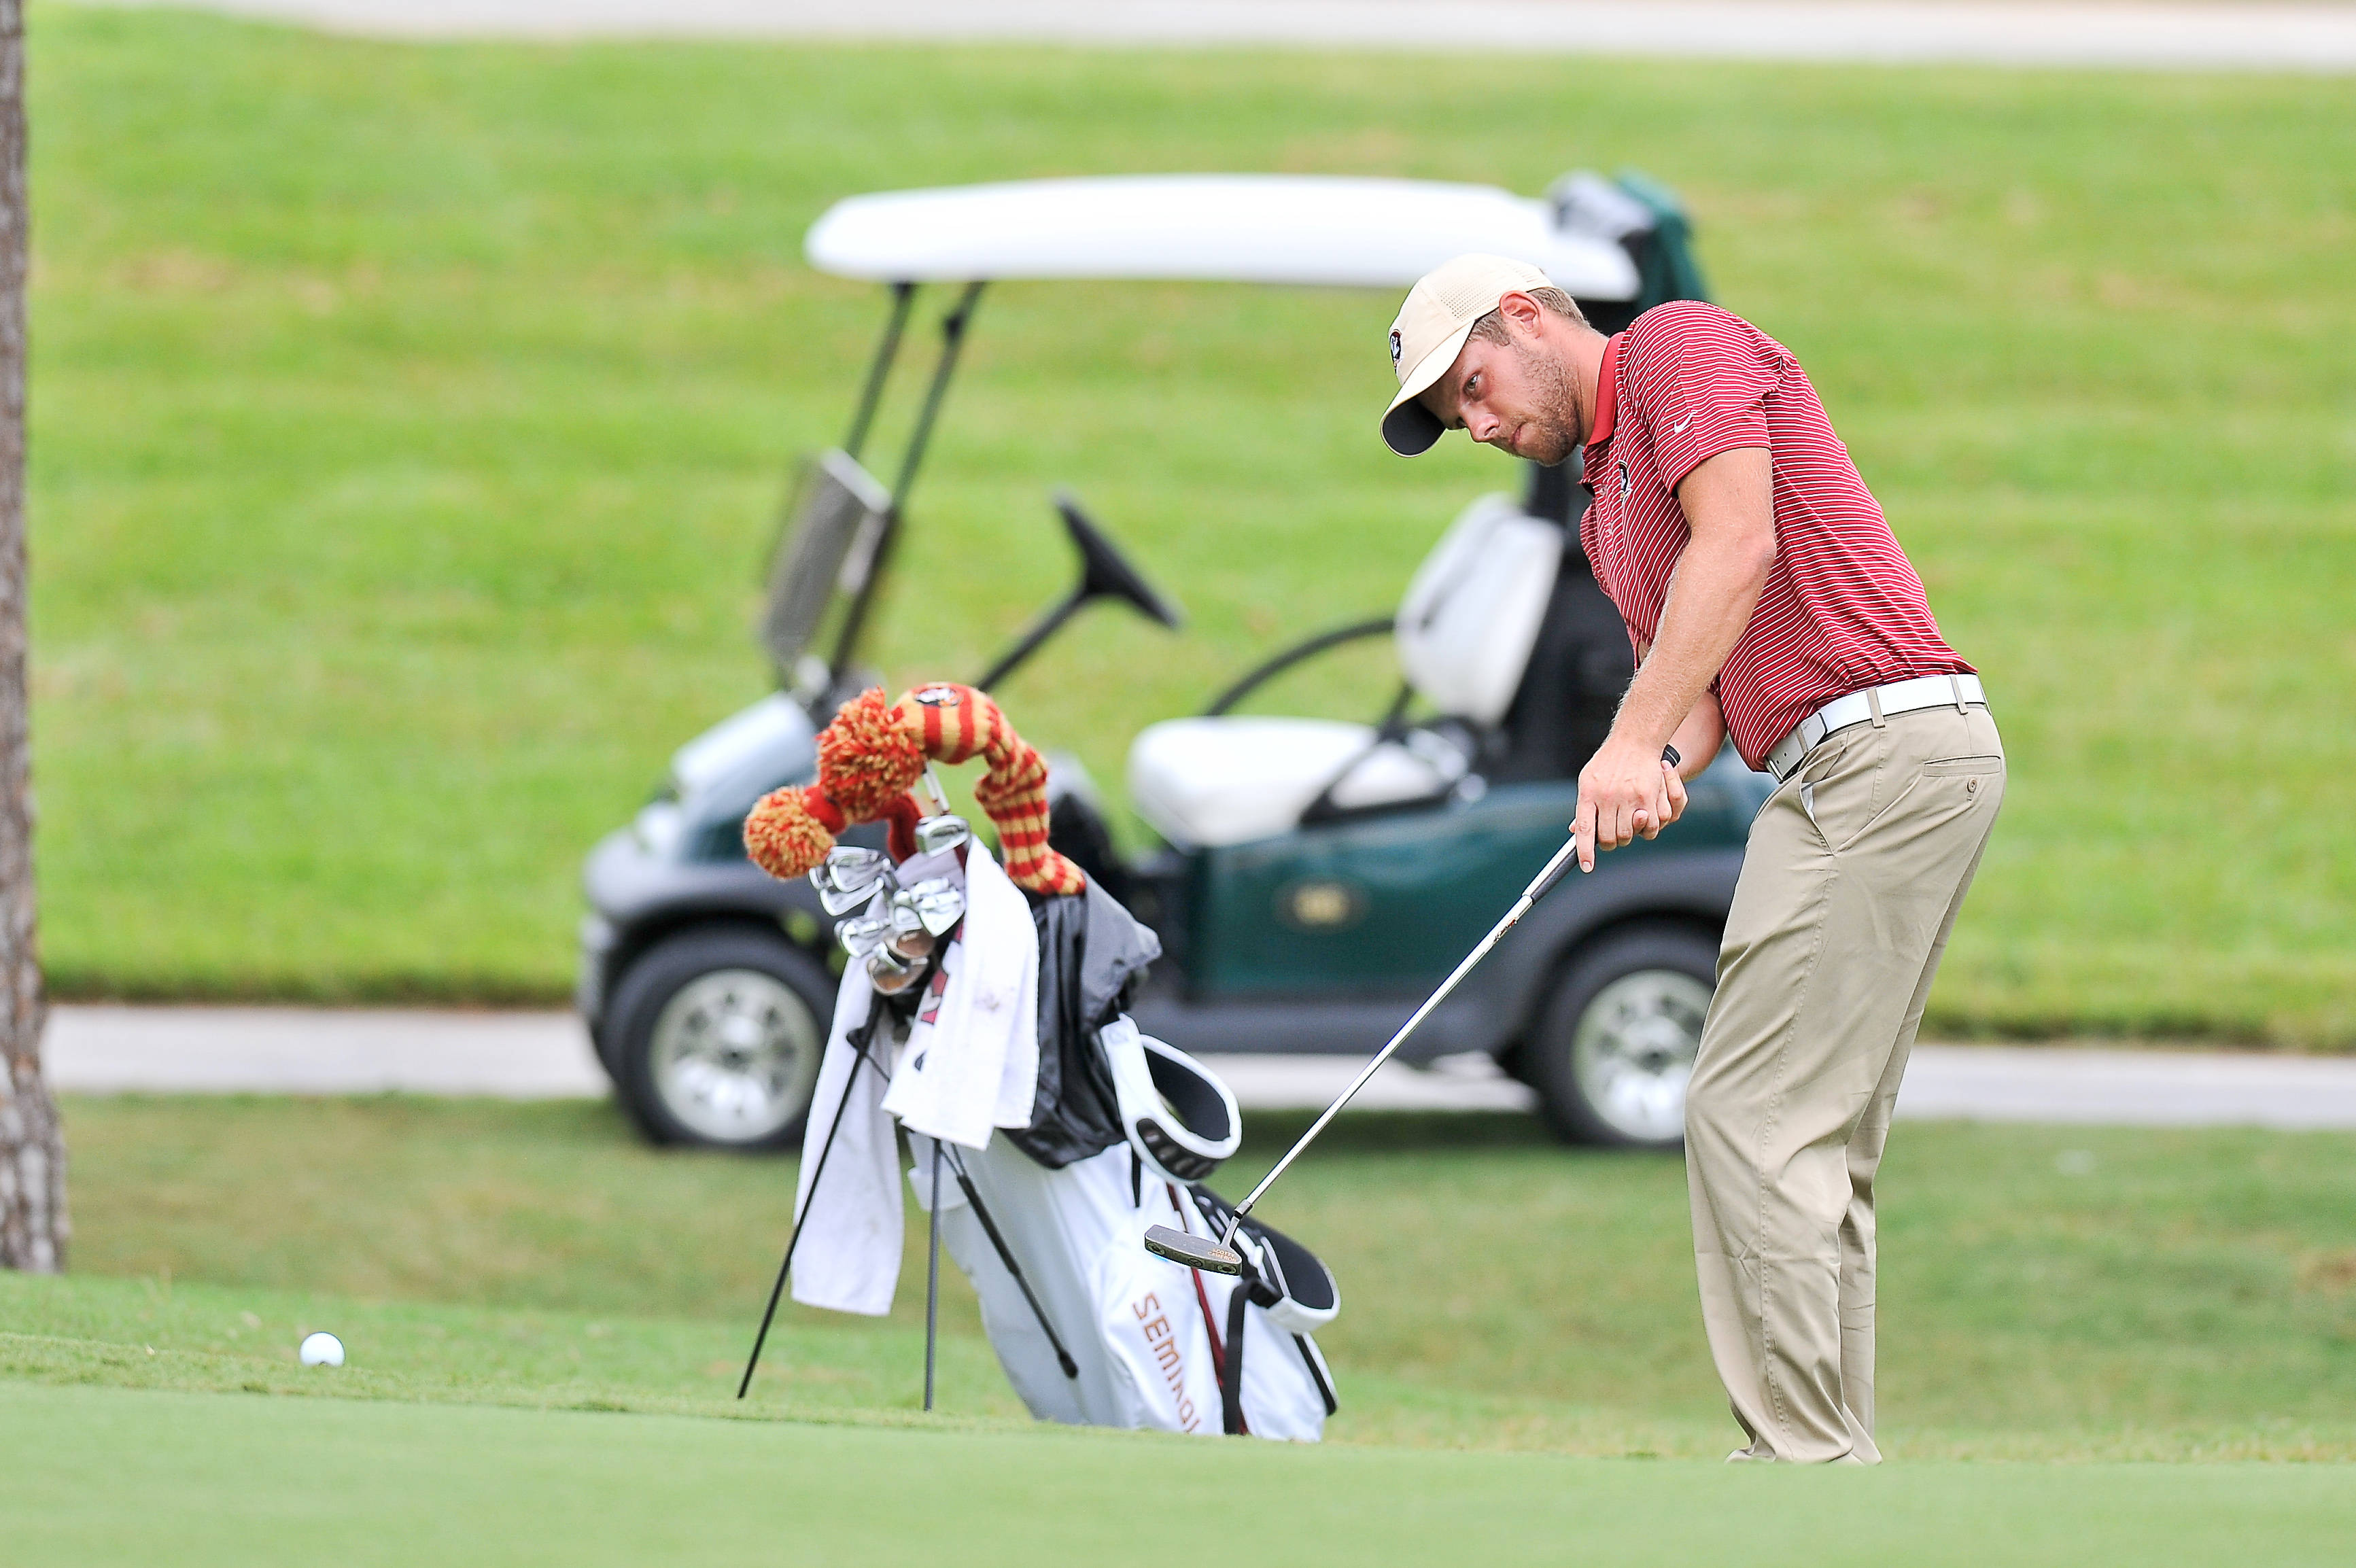 Men's Golf at the Tavistock Collegiate Invitational